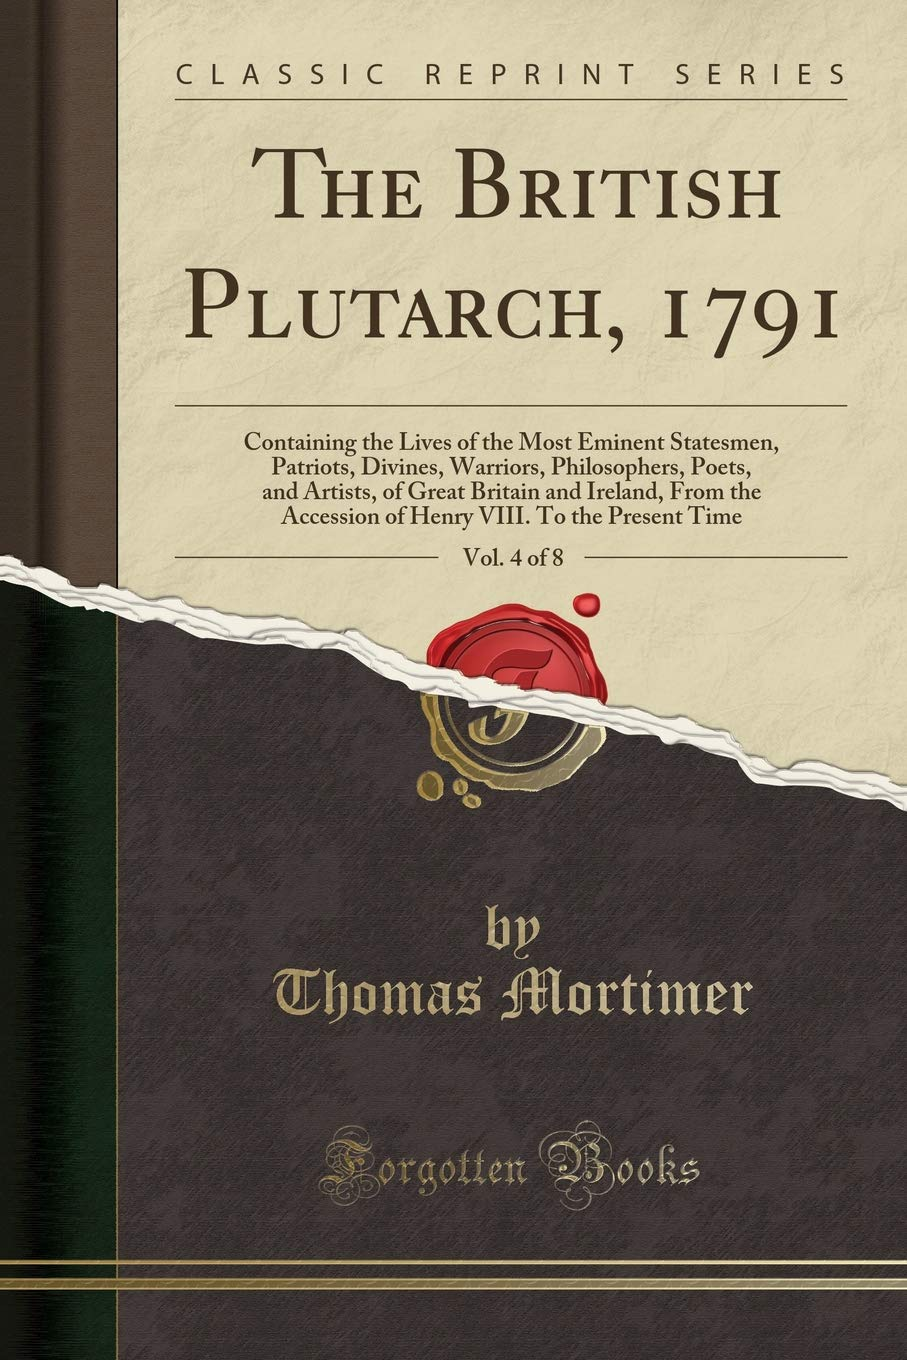 The British Plutarch, 1791, Vol. 4 of 8: Containing the Lives of the Most Eminent Statesmen, Patriots, Divines, Warriors, Philosophers, Poets, and ... Accession of Henry VIII. To the Present Time pdf